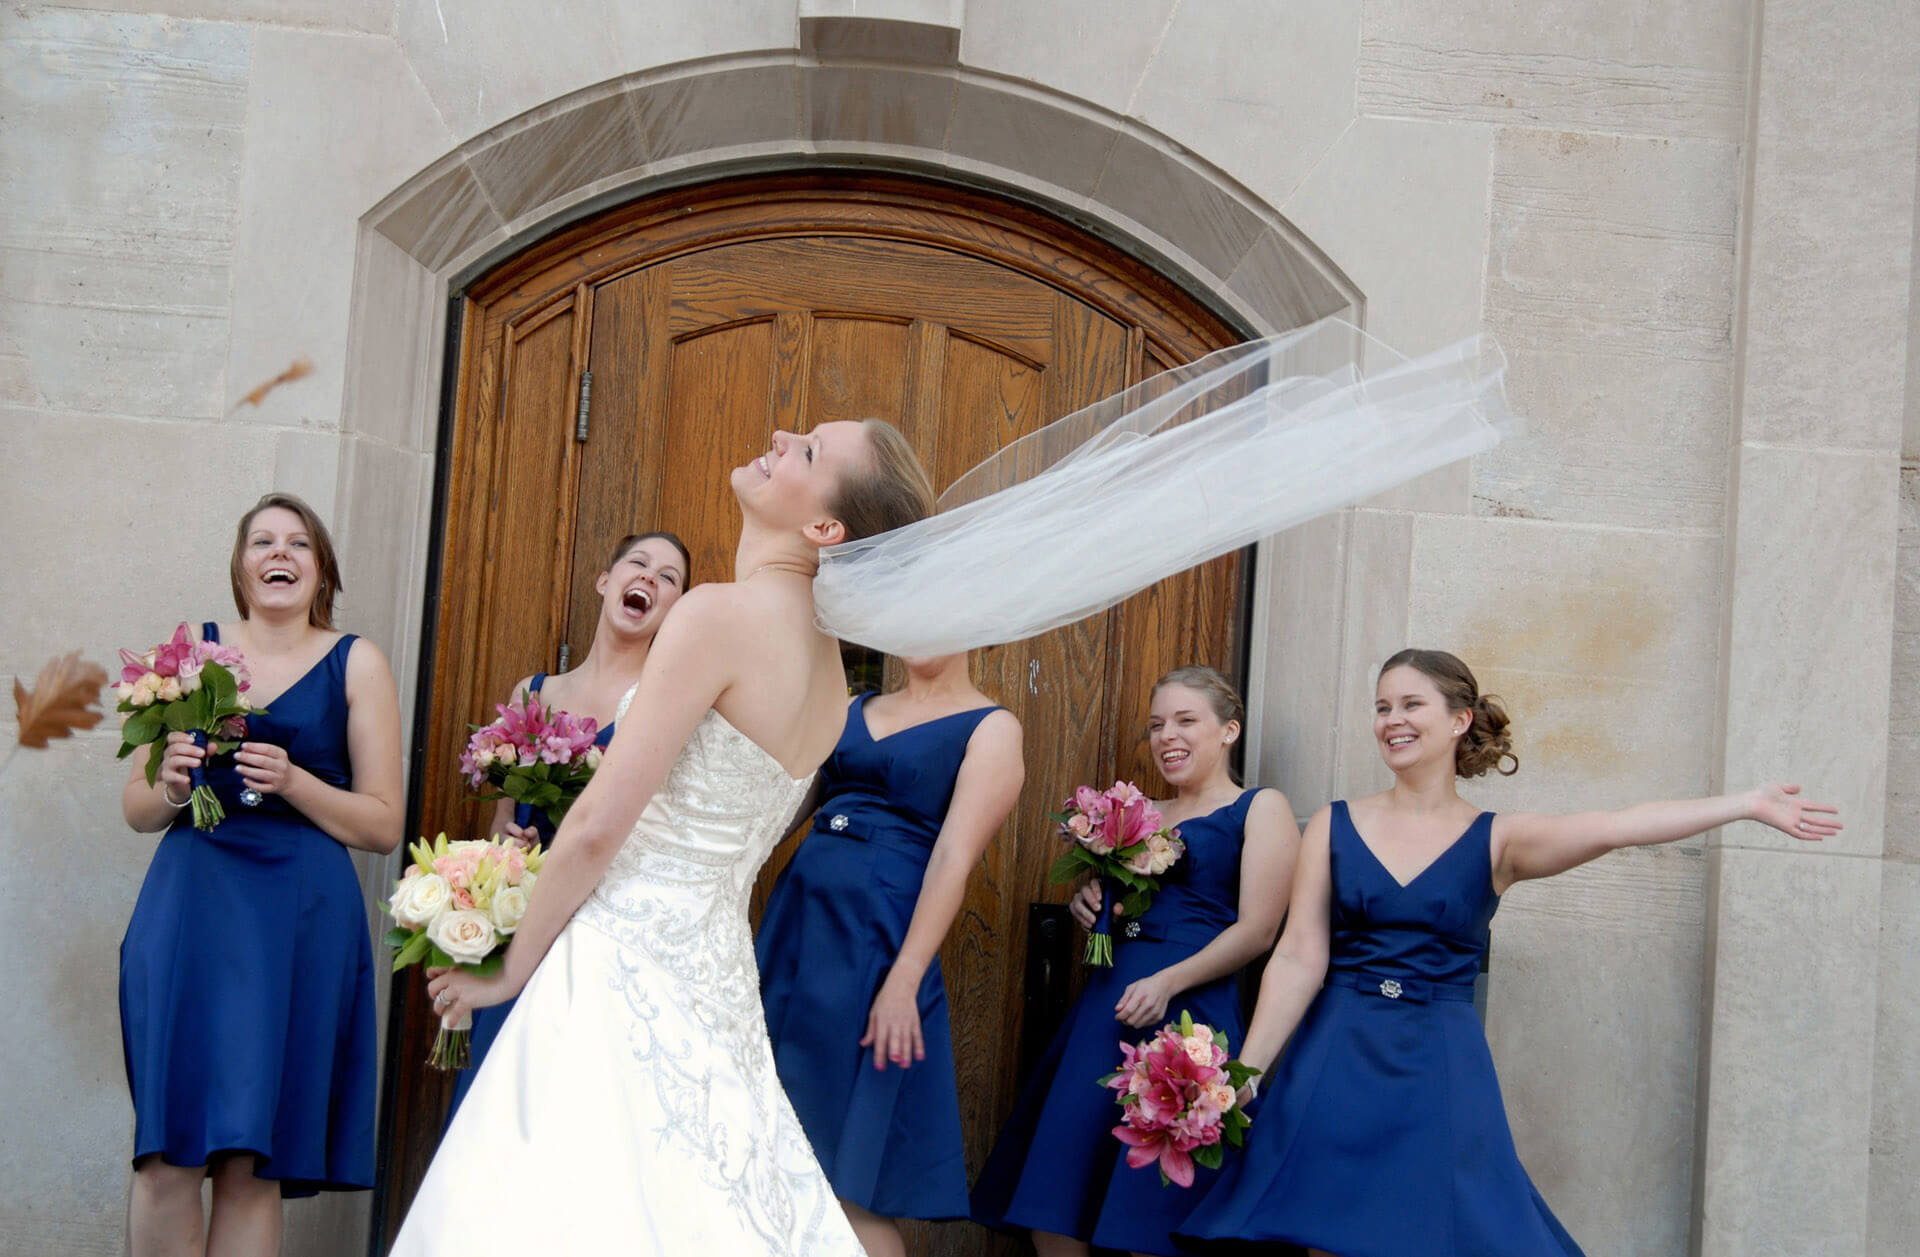 A Michigan bride laughs as the wind takes her veil in the wind during a fall wedding in Ann Arbor, Michigan.